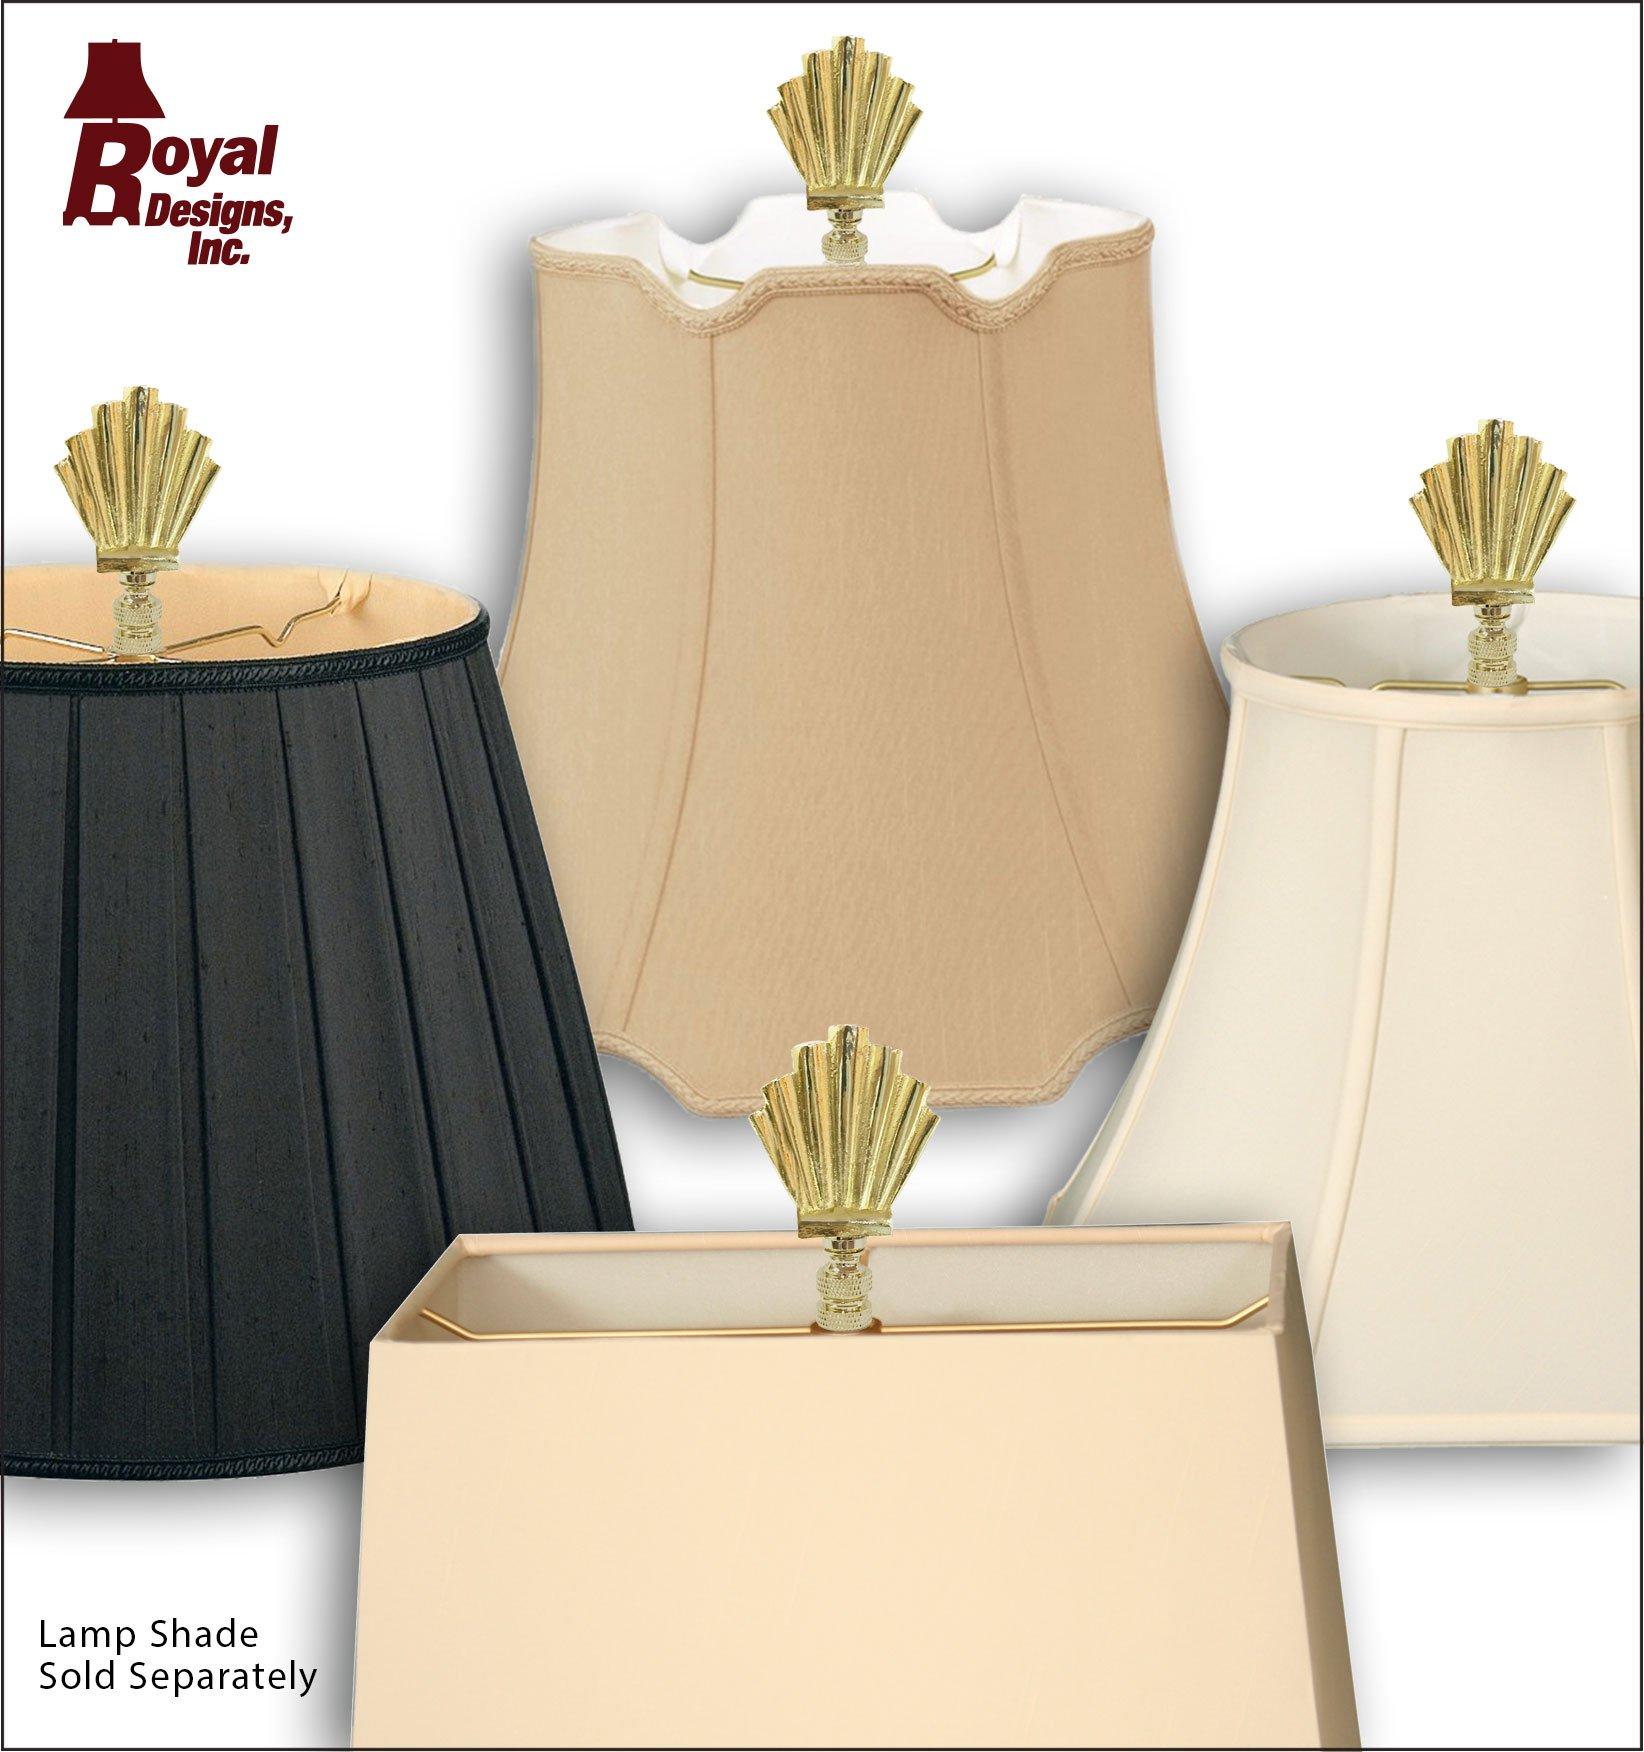 Royal Designs Art Deco Motif Lamp Finial for Lamp Shade- Polished Brass by Royal Designs, Inc (Image #4)